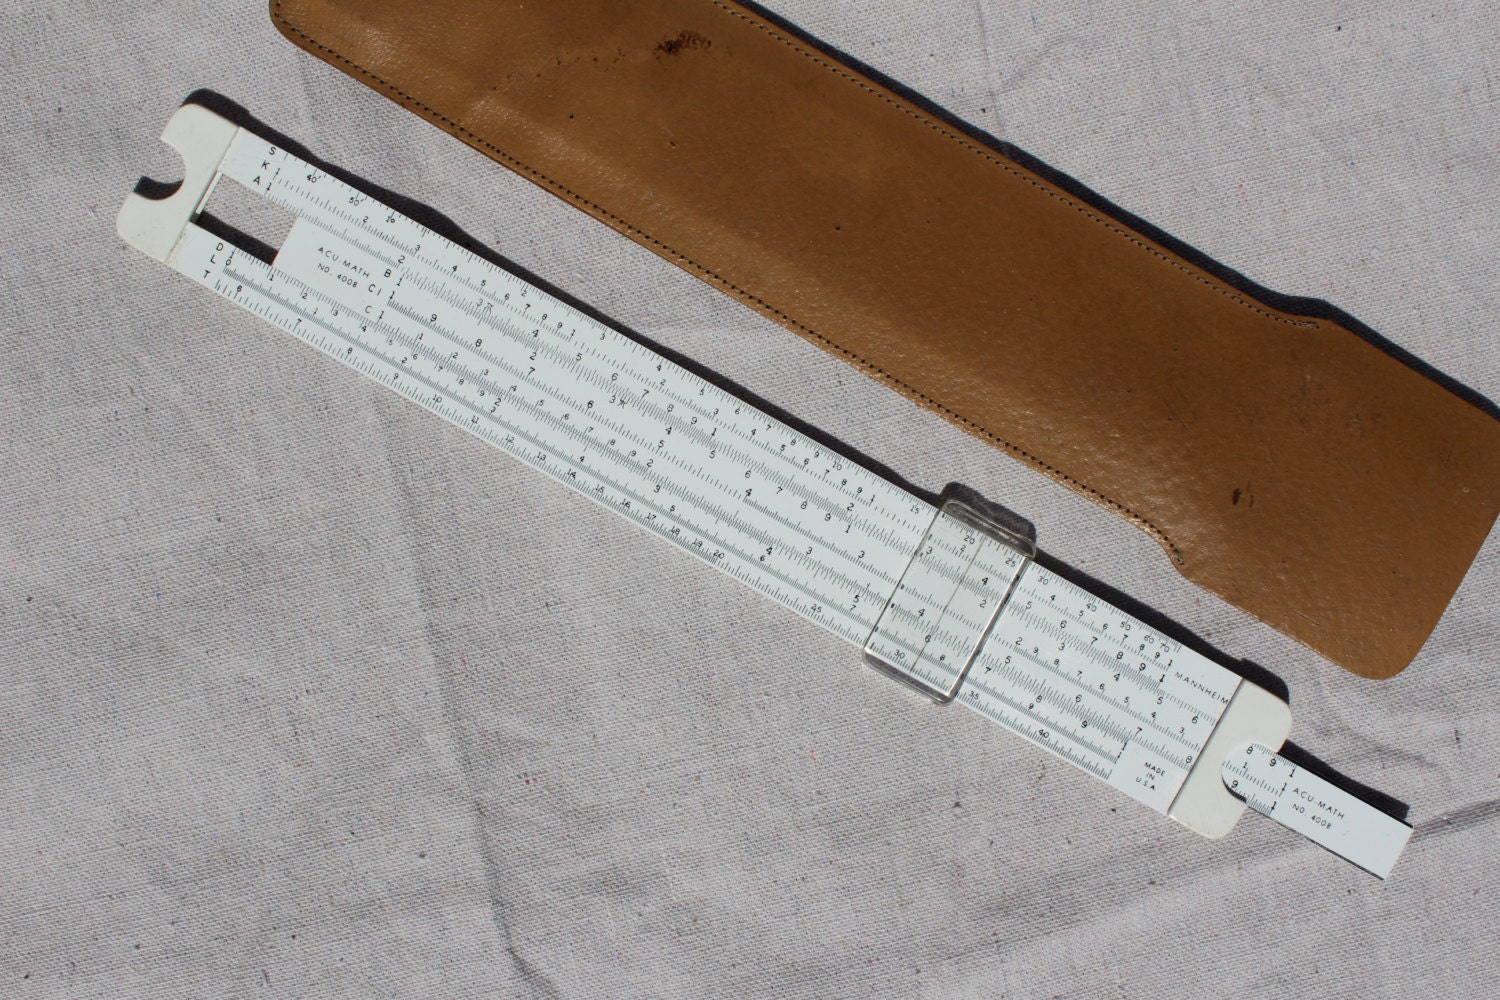 ACU-MATH Mannheim No. 4008 Professional Slide Rule, 1960's, In Case Retro Tool Mid Century Tool Collectible